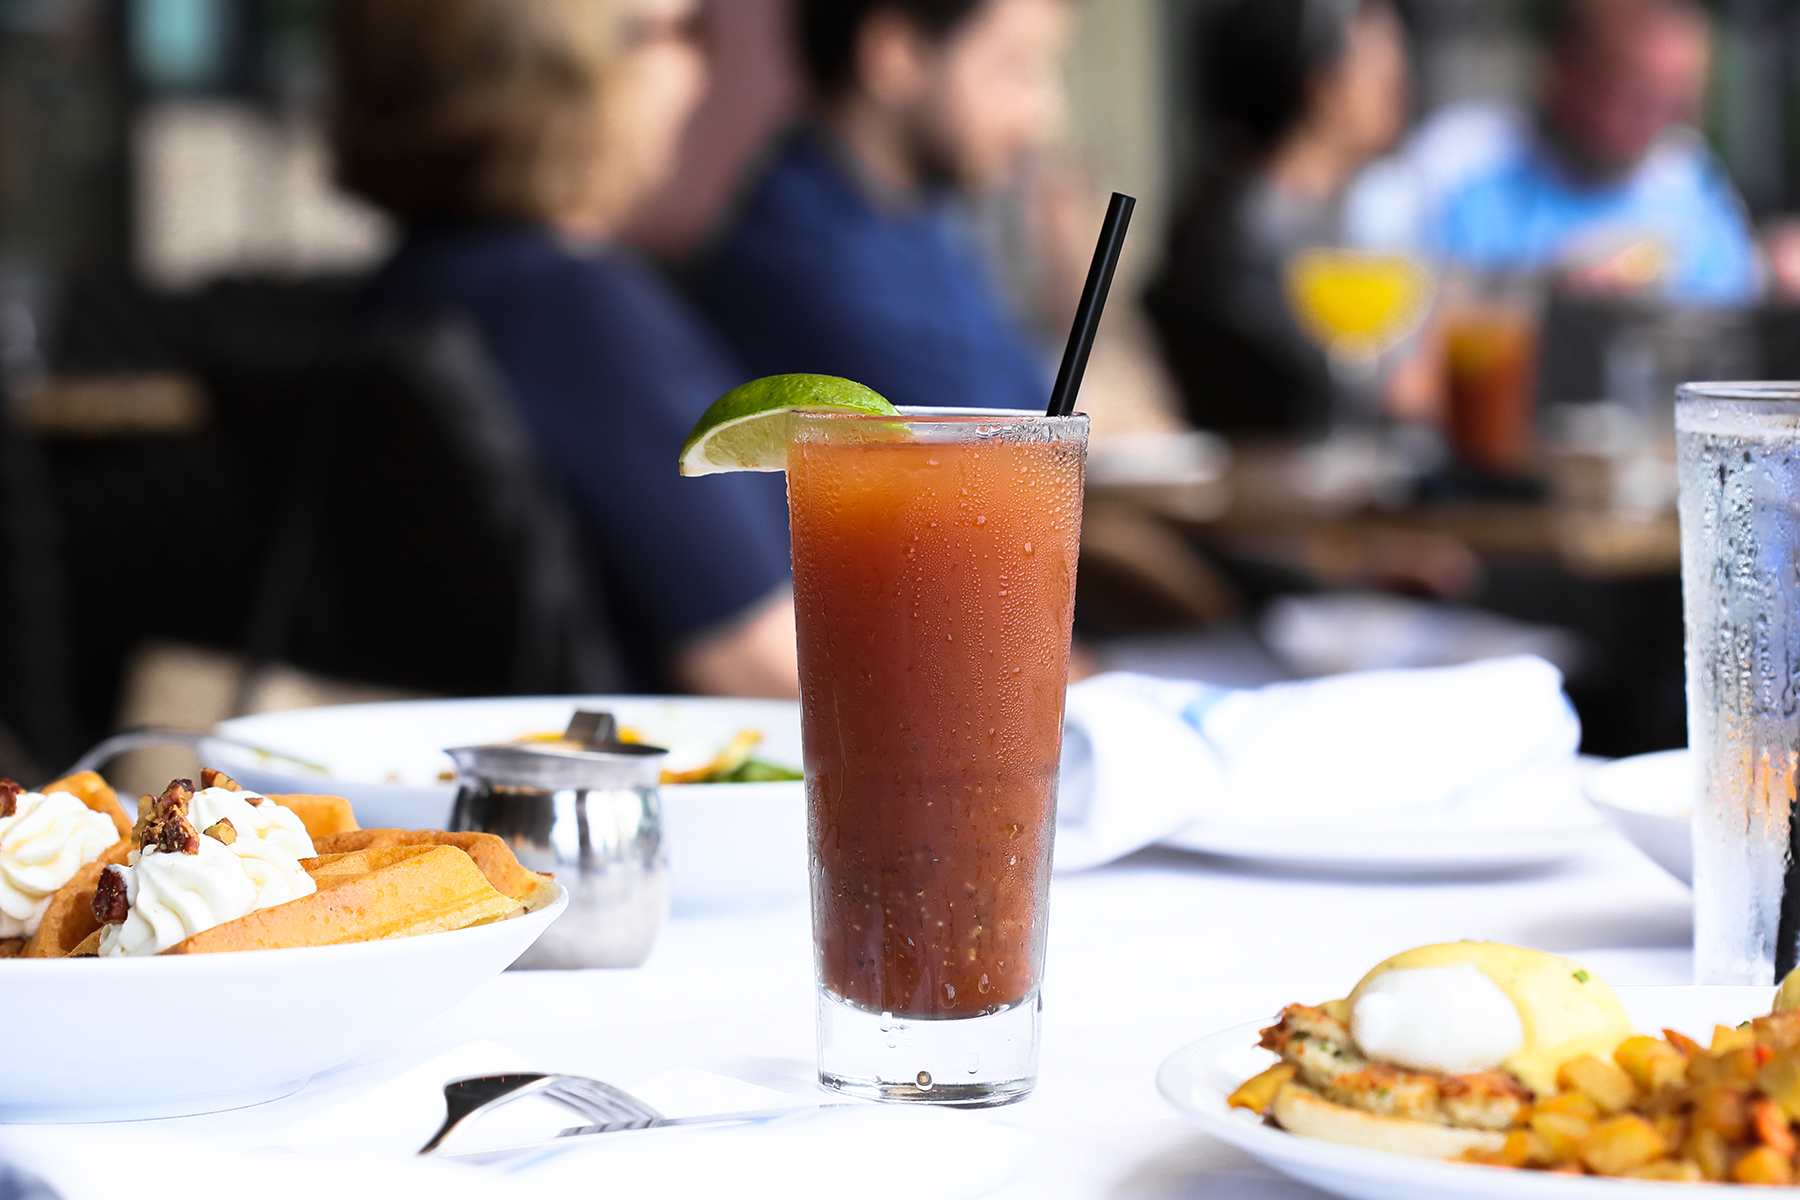 Brunch served every Sunday at Midtown Grille in Raleigh